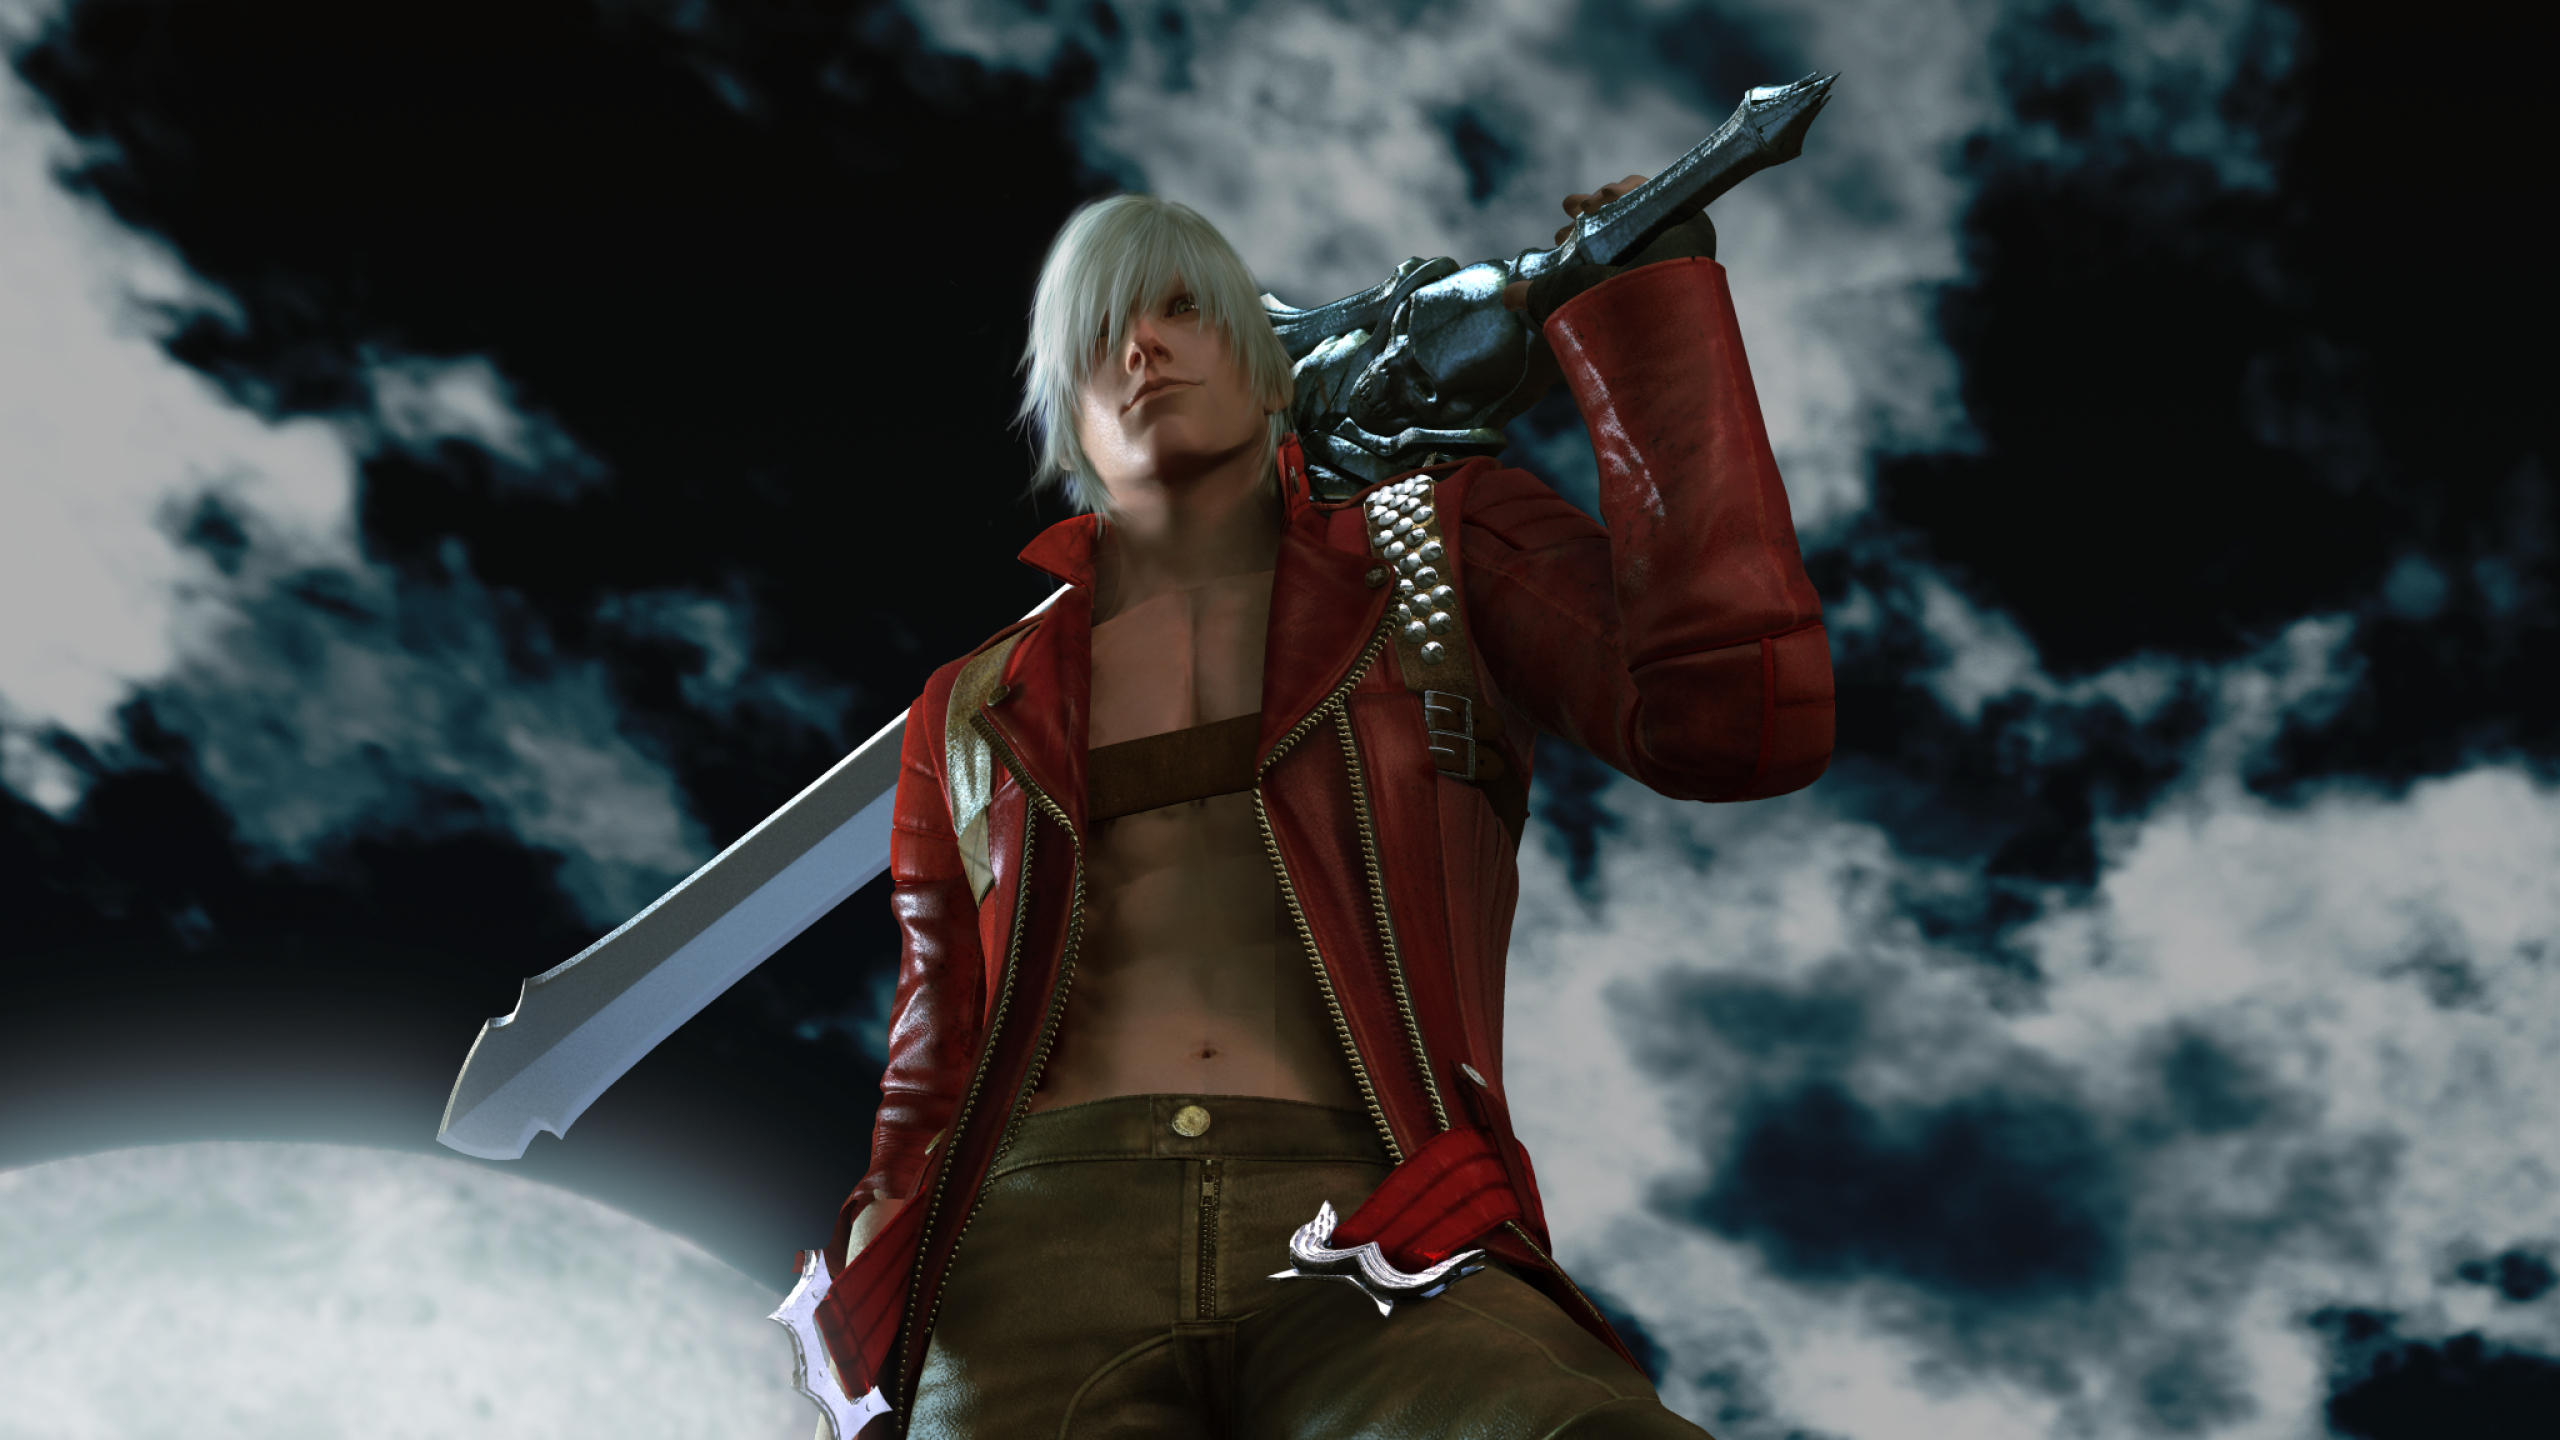 2560x1440 Devil May Cry 3 1440p Resolution Wallpaper Hd Games 4k